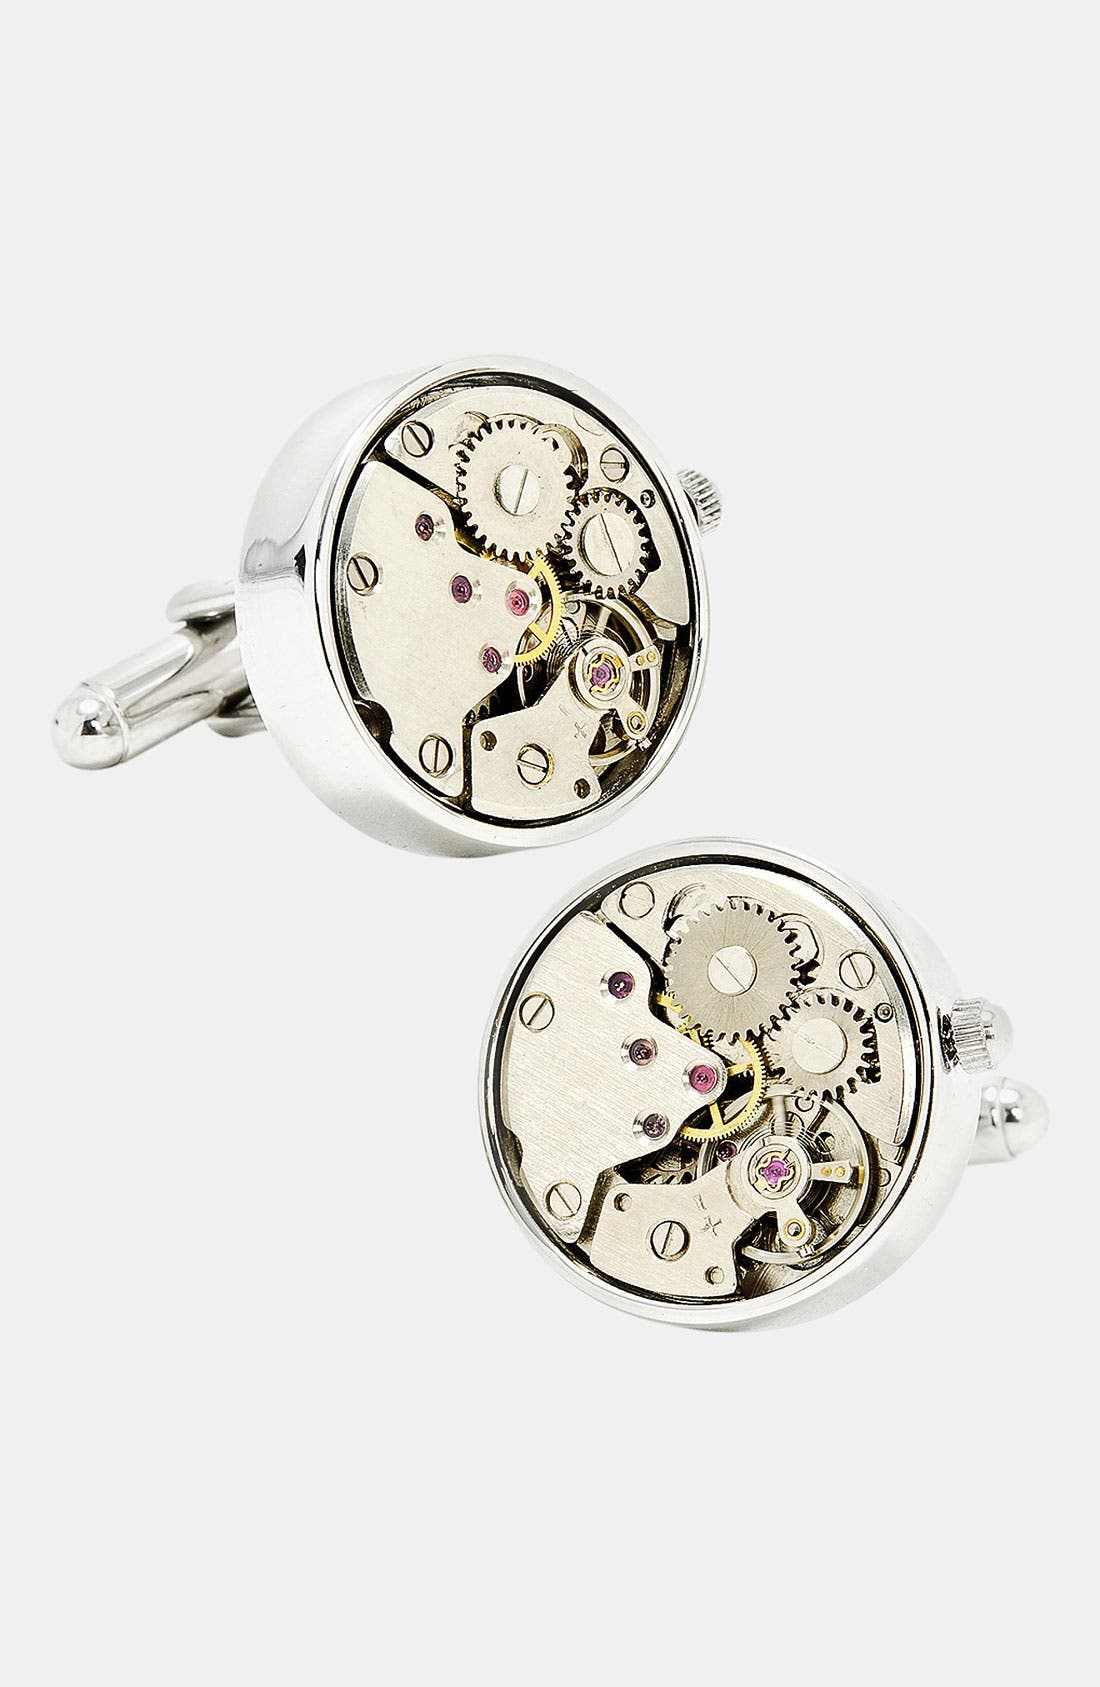 Penny Black 40 'Steampunk Watch Movement' Cuff Links